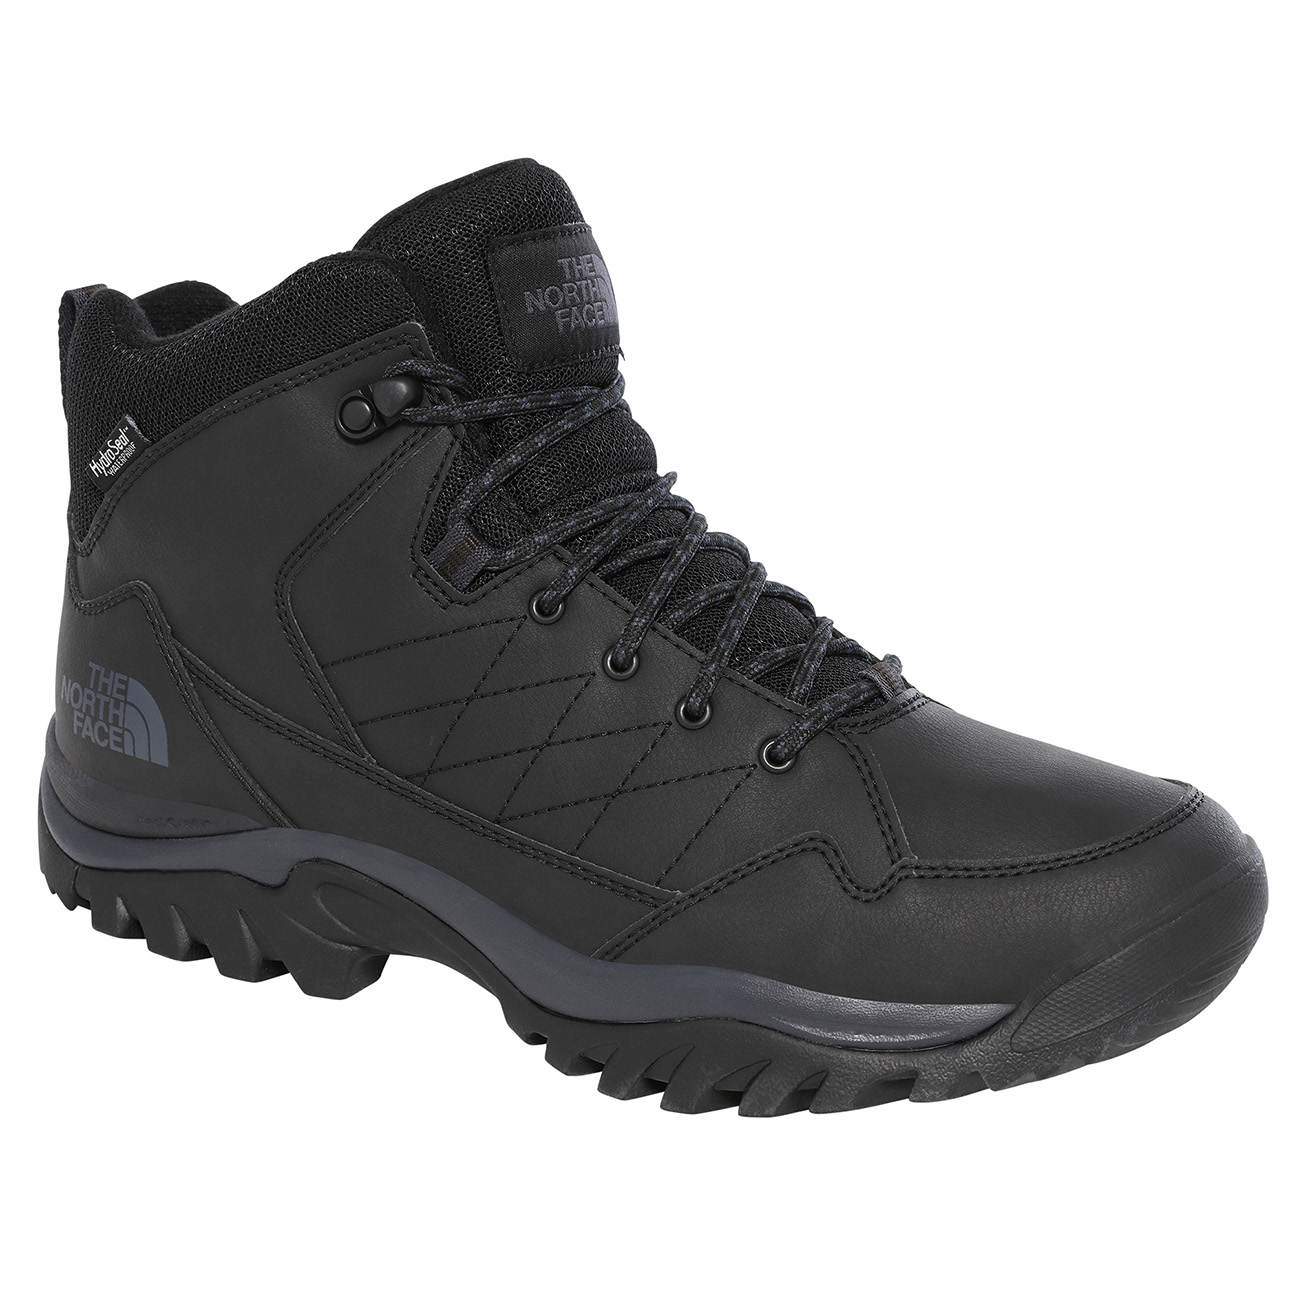 The North Face Storm Strike